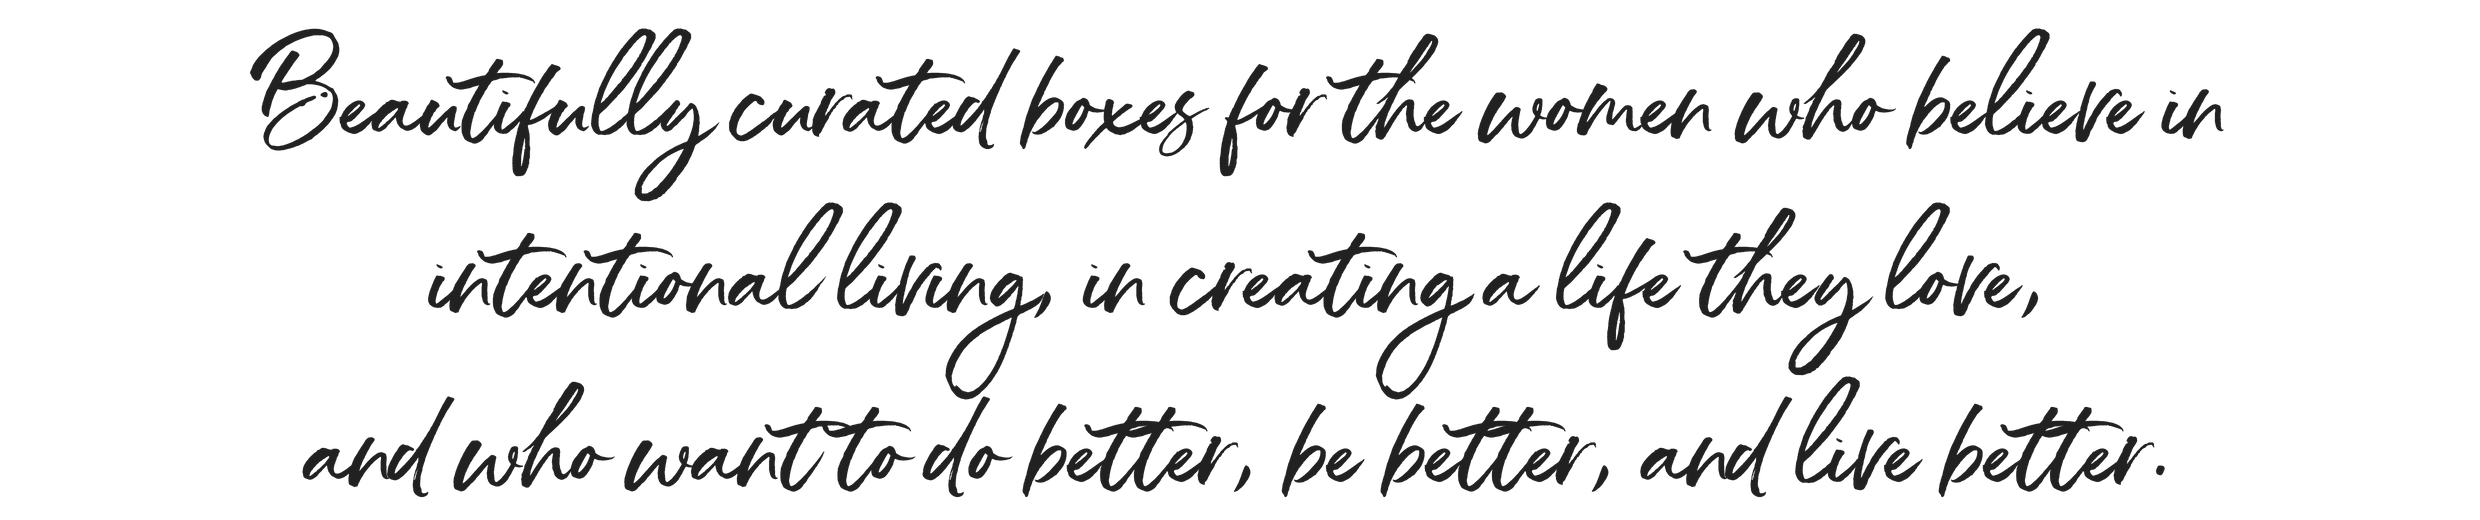 Beautifully curated boxes for the women who believe in intentional living, in creating a life they love, and who want to do better, be better, and live better.-2.png